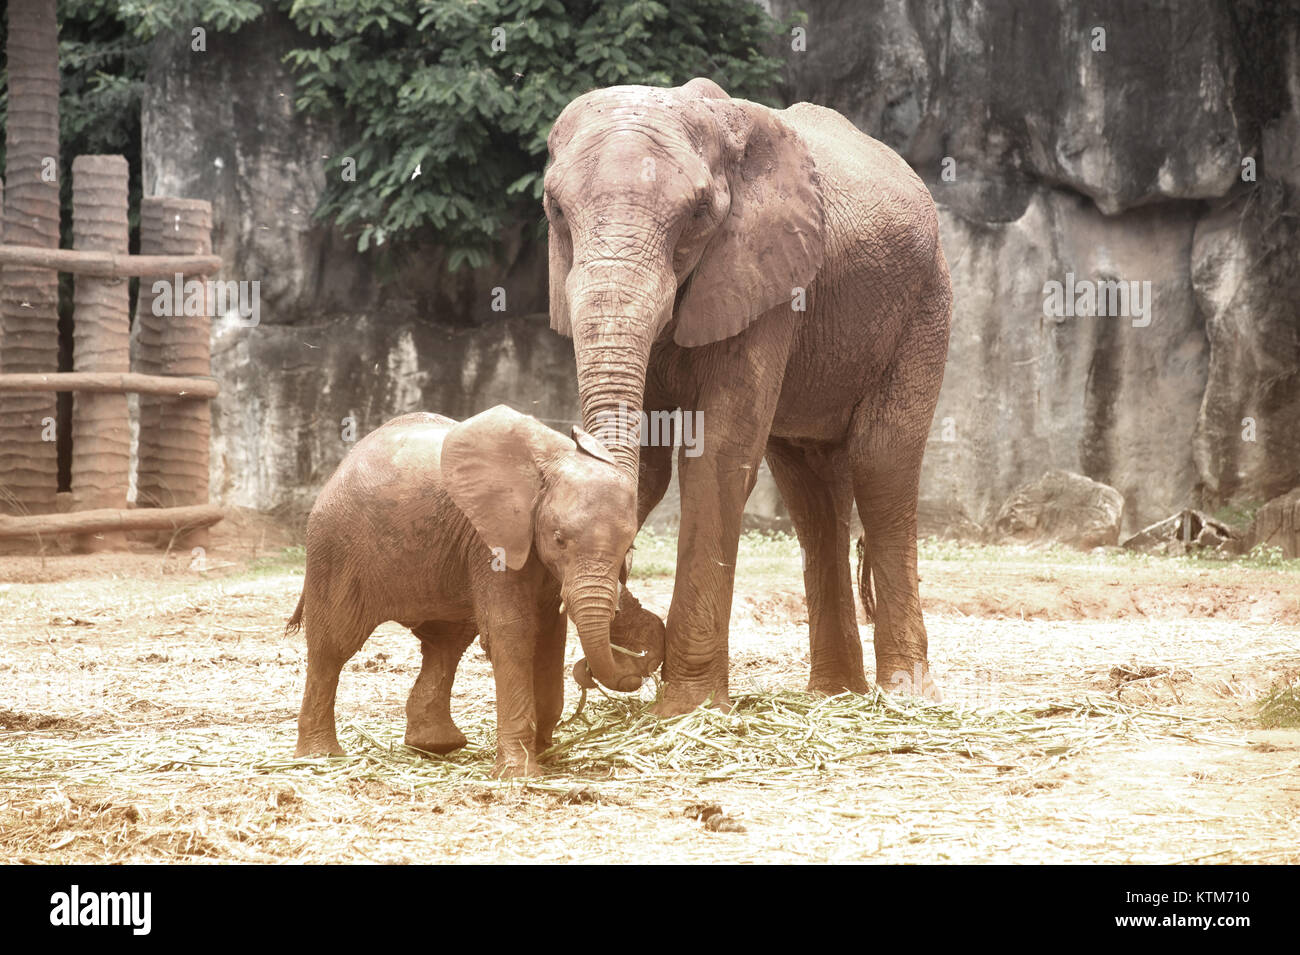 Are Elephants Mammals >> Elephants Are Large Mammals Of The Family Elephantidae And The Order